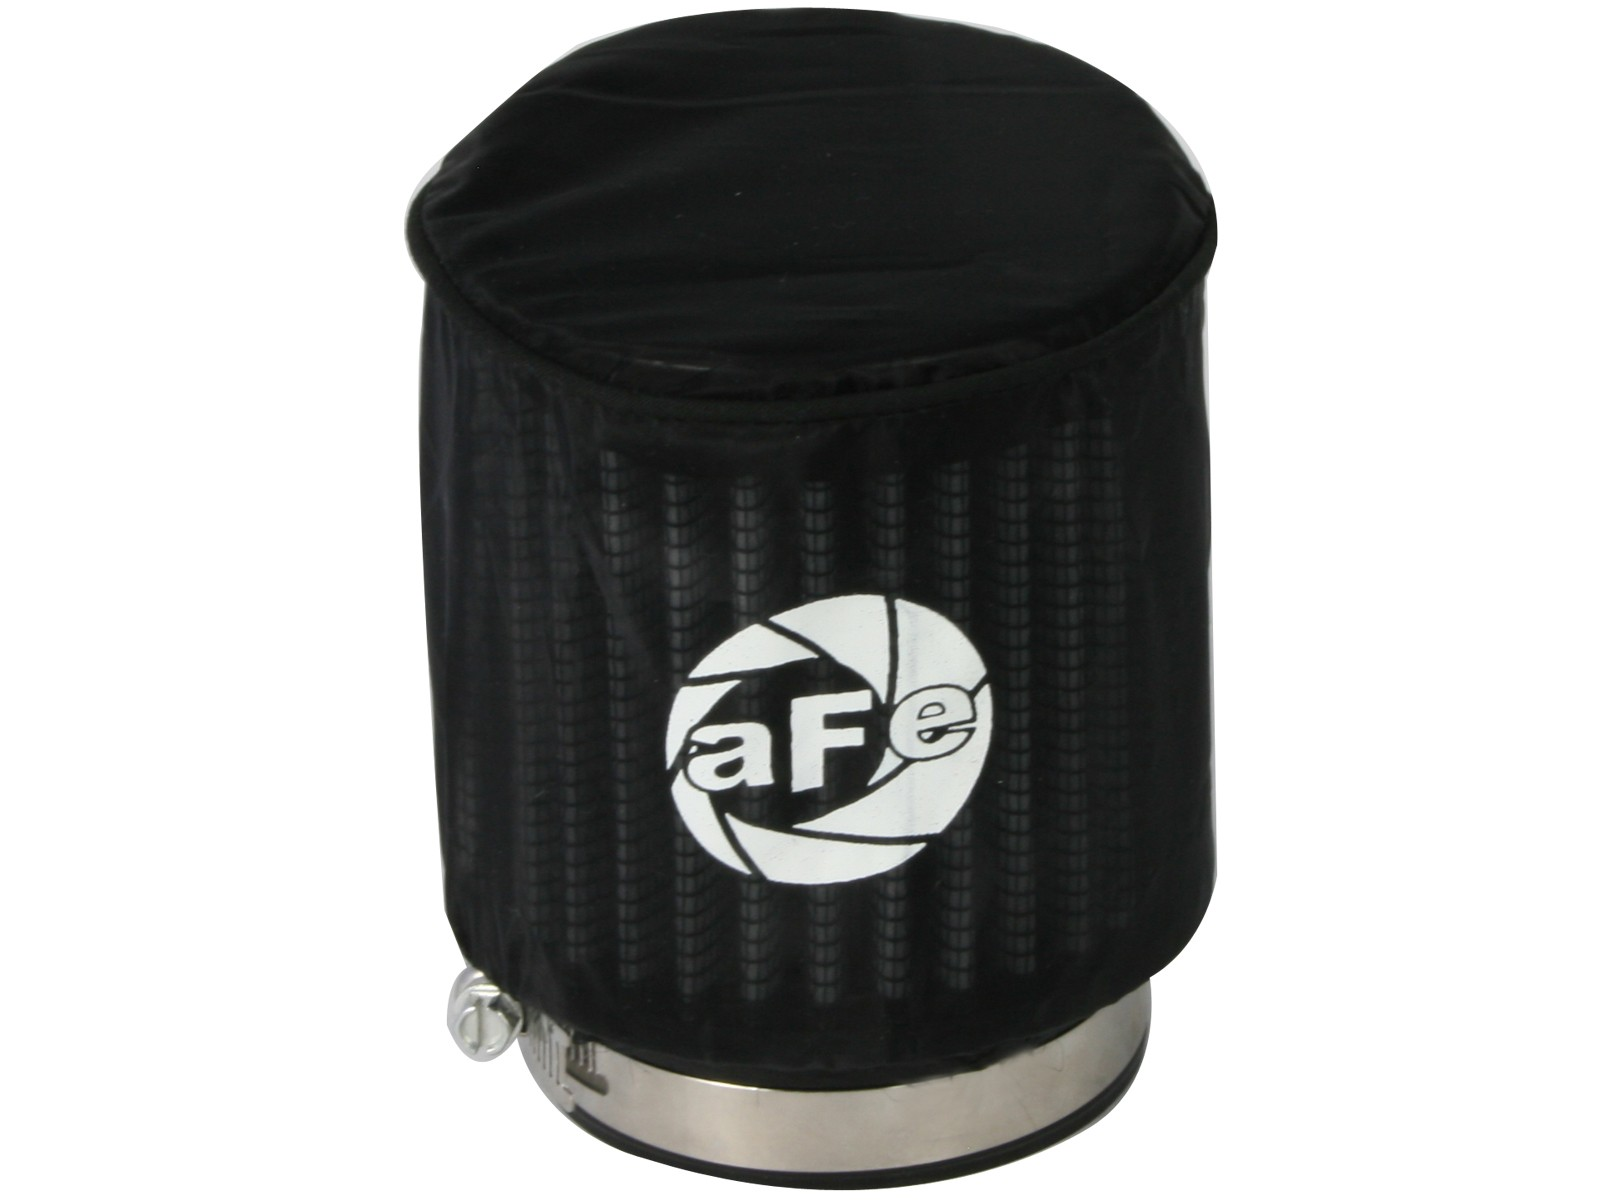 aFe POWER 28-10223 Magnum SHIELD Pre-Filters